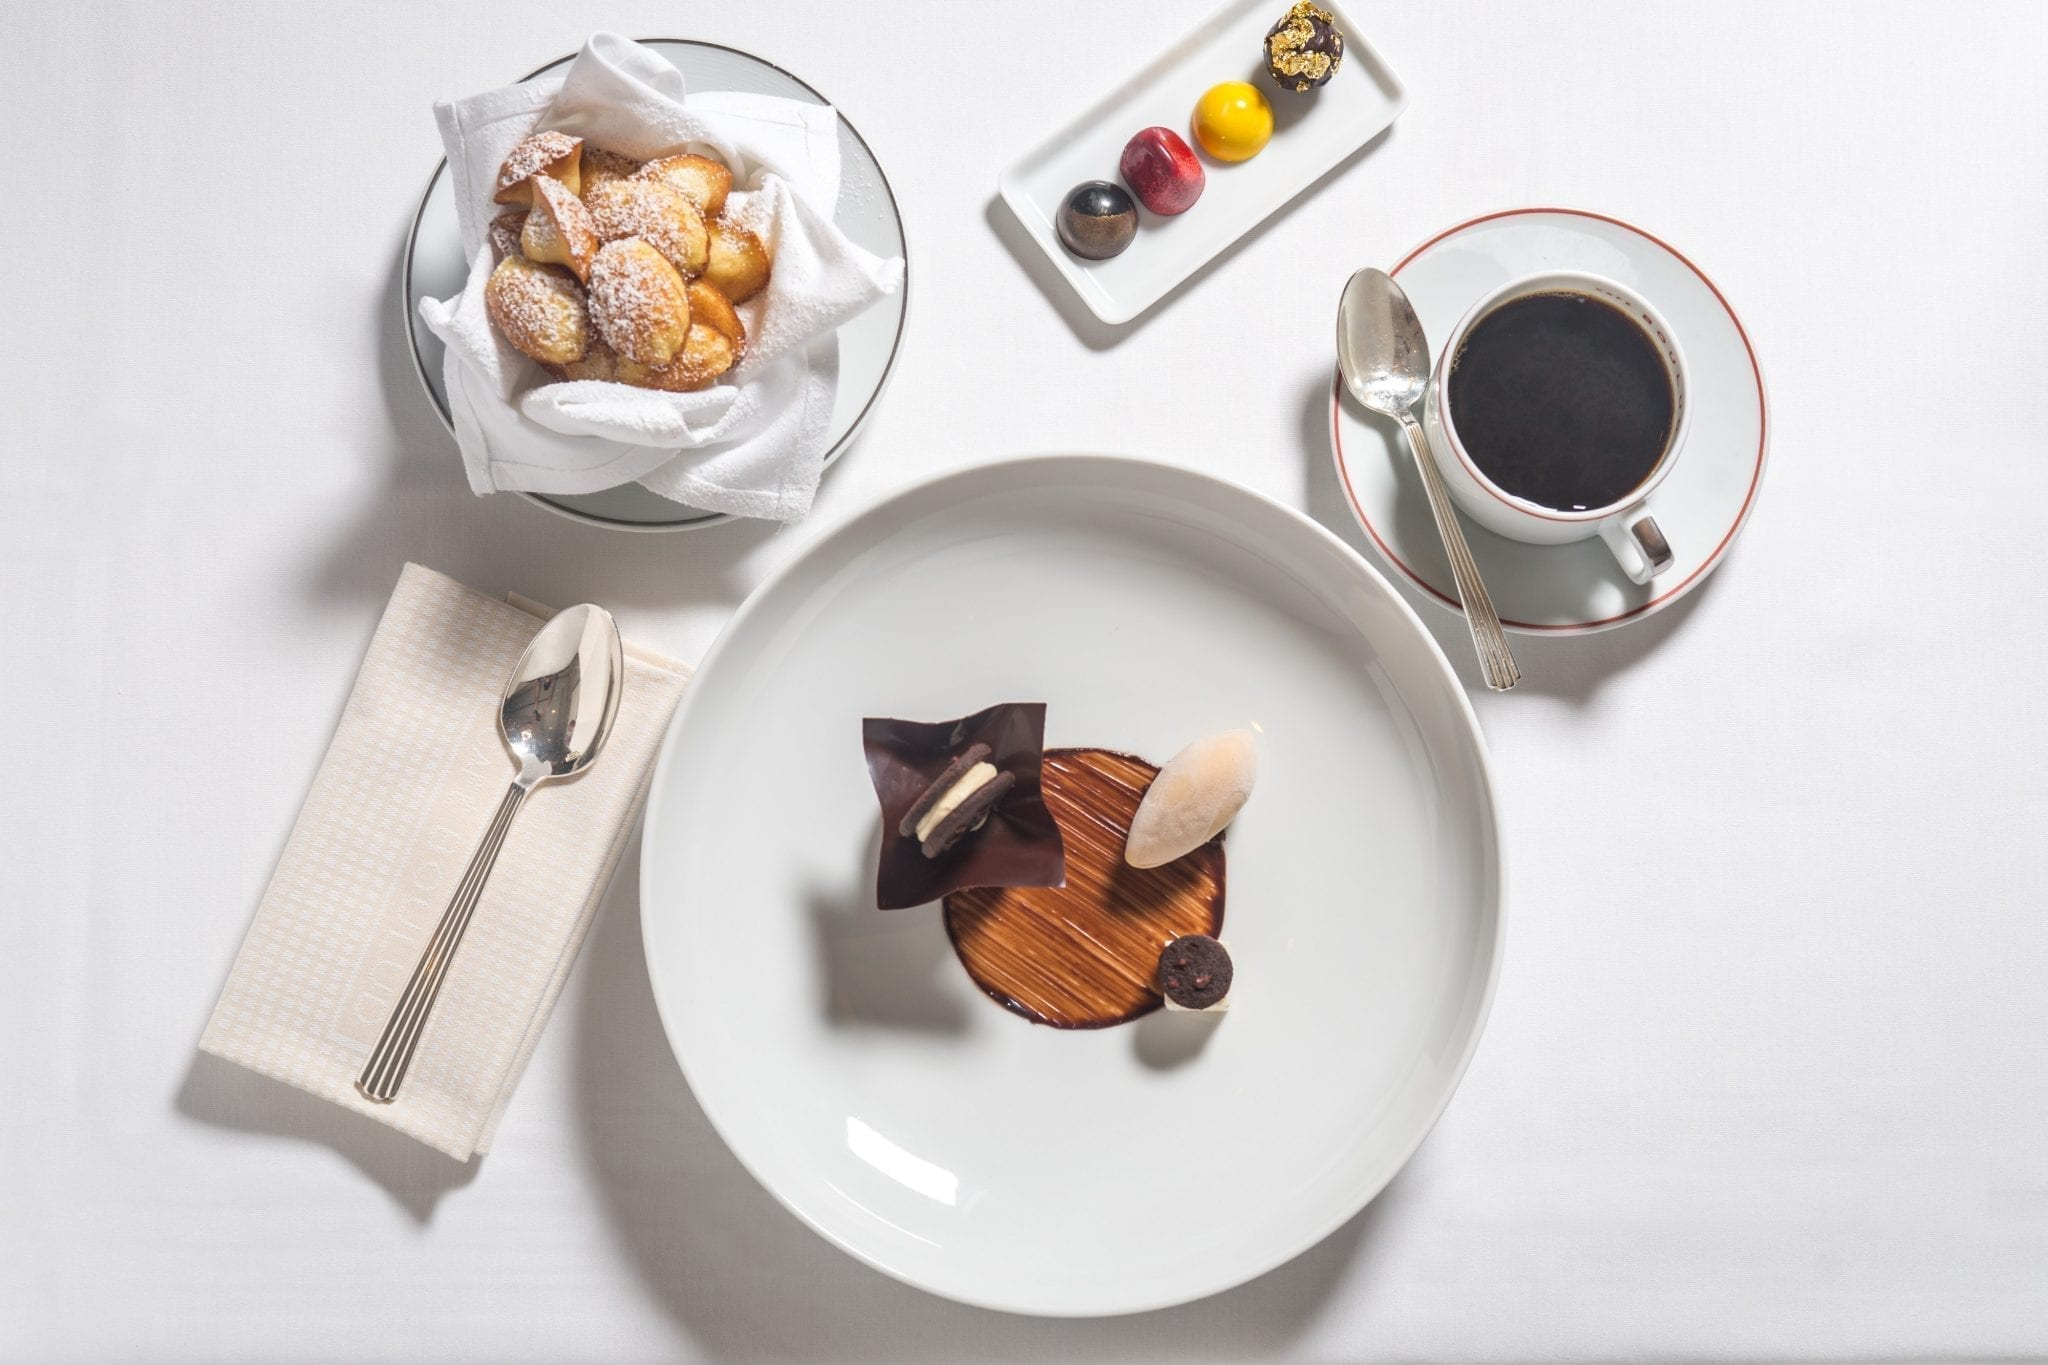 Assorted deserts pastries, served from Cafe Boulud. A saucer holding a spoon and coffee is placed just beside. Photograph by Paul Wagtouicz.